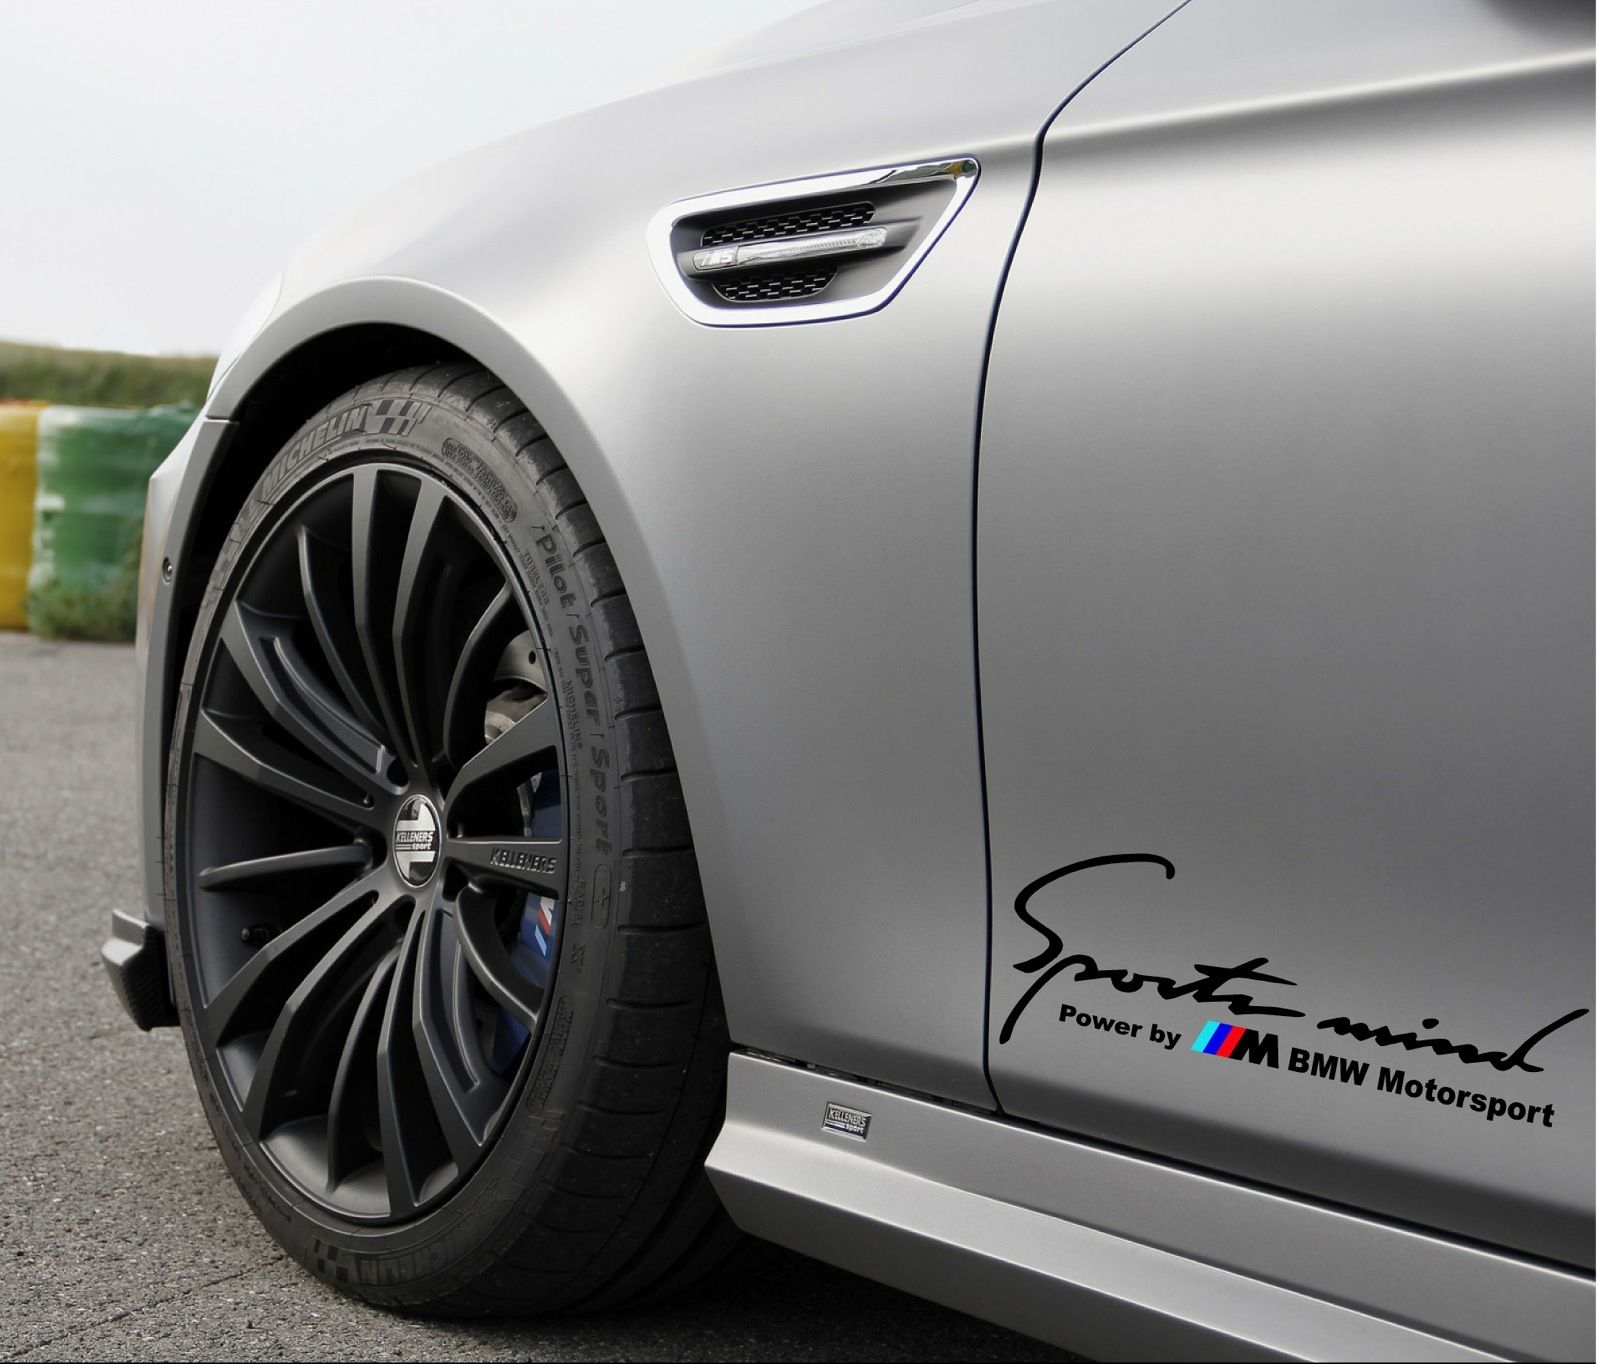 Sports Mind Power By M Bmw Motorsport M M Decal Sticker